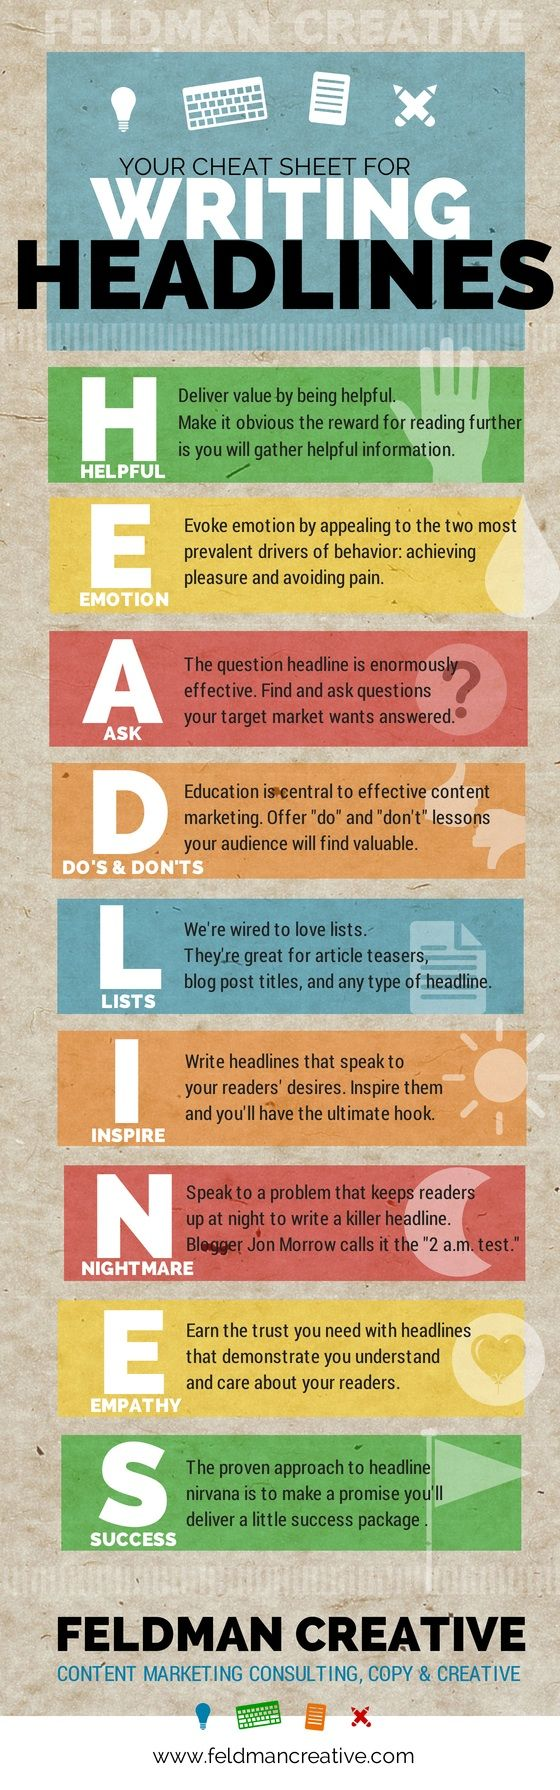 Your Cheat Sheet for Writing Headlines - #blogging #writing #content